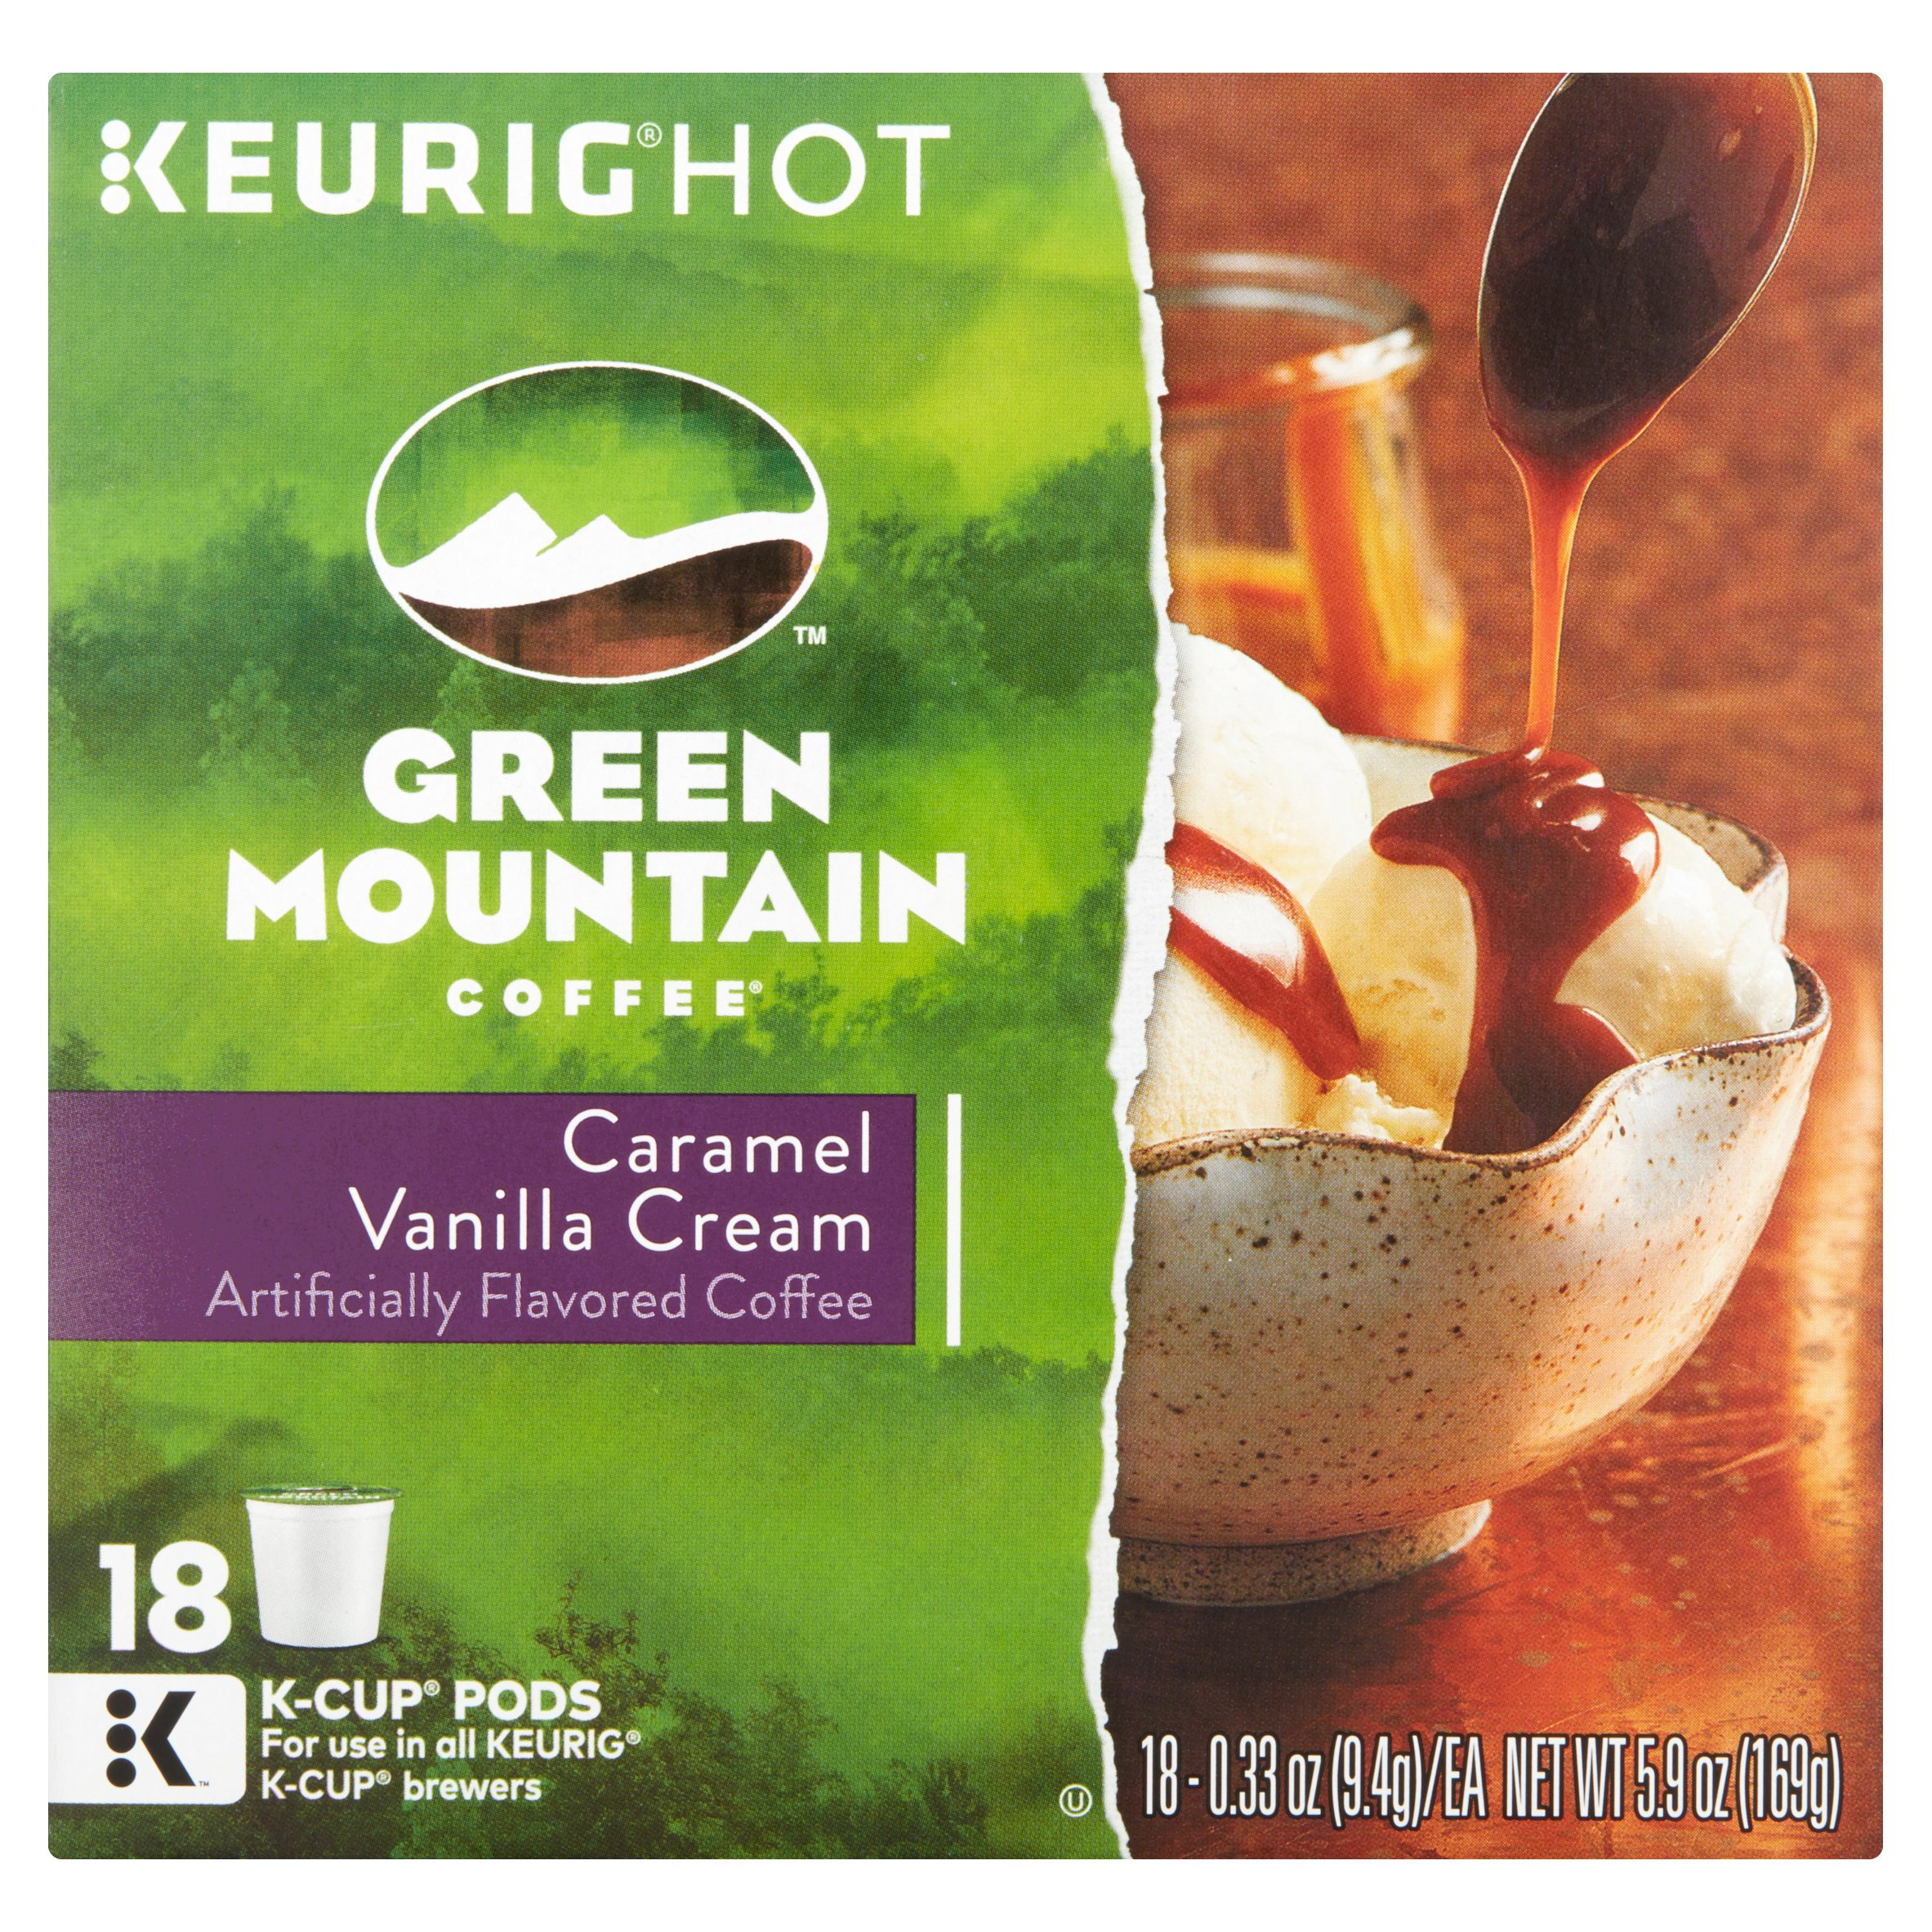 Keurig Hot Green Mountain Coffee Caramel Vanilla Cream Coffee, 0.33 oz, 18 count